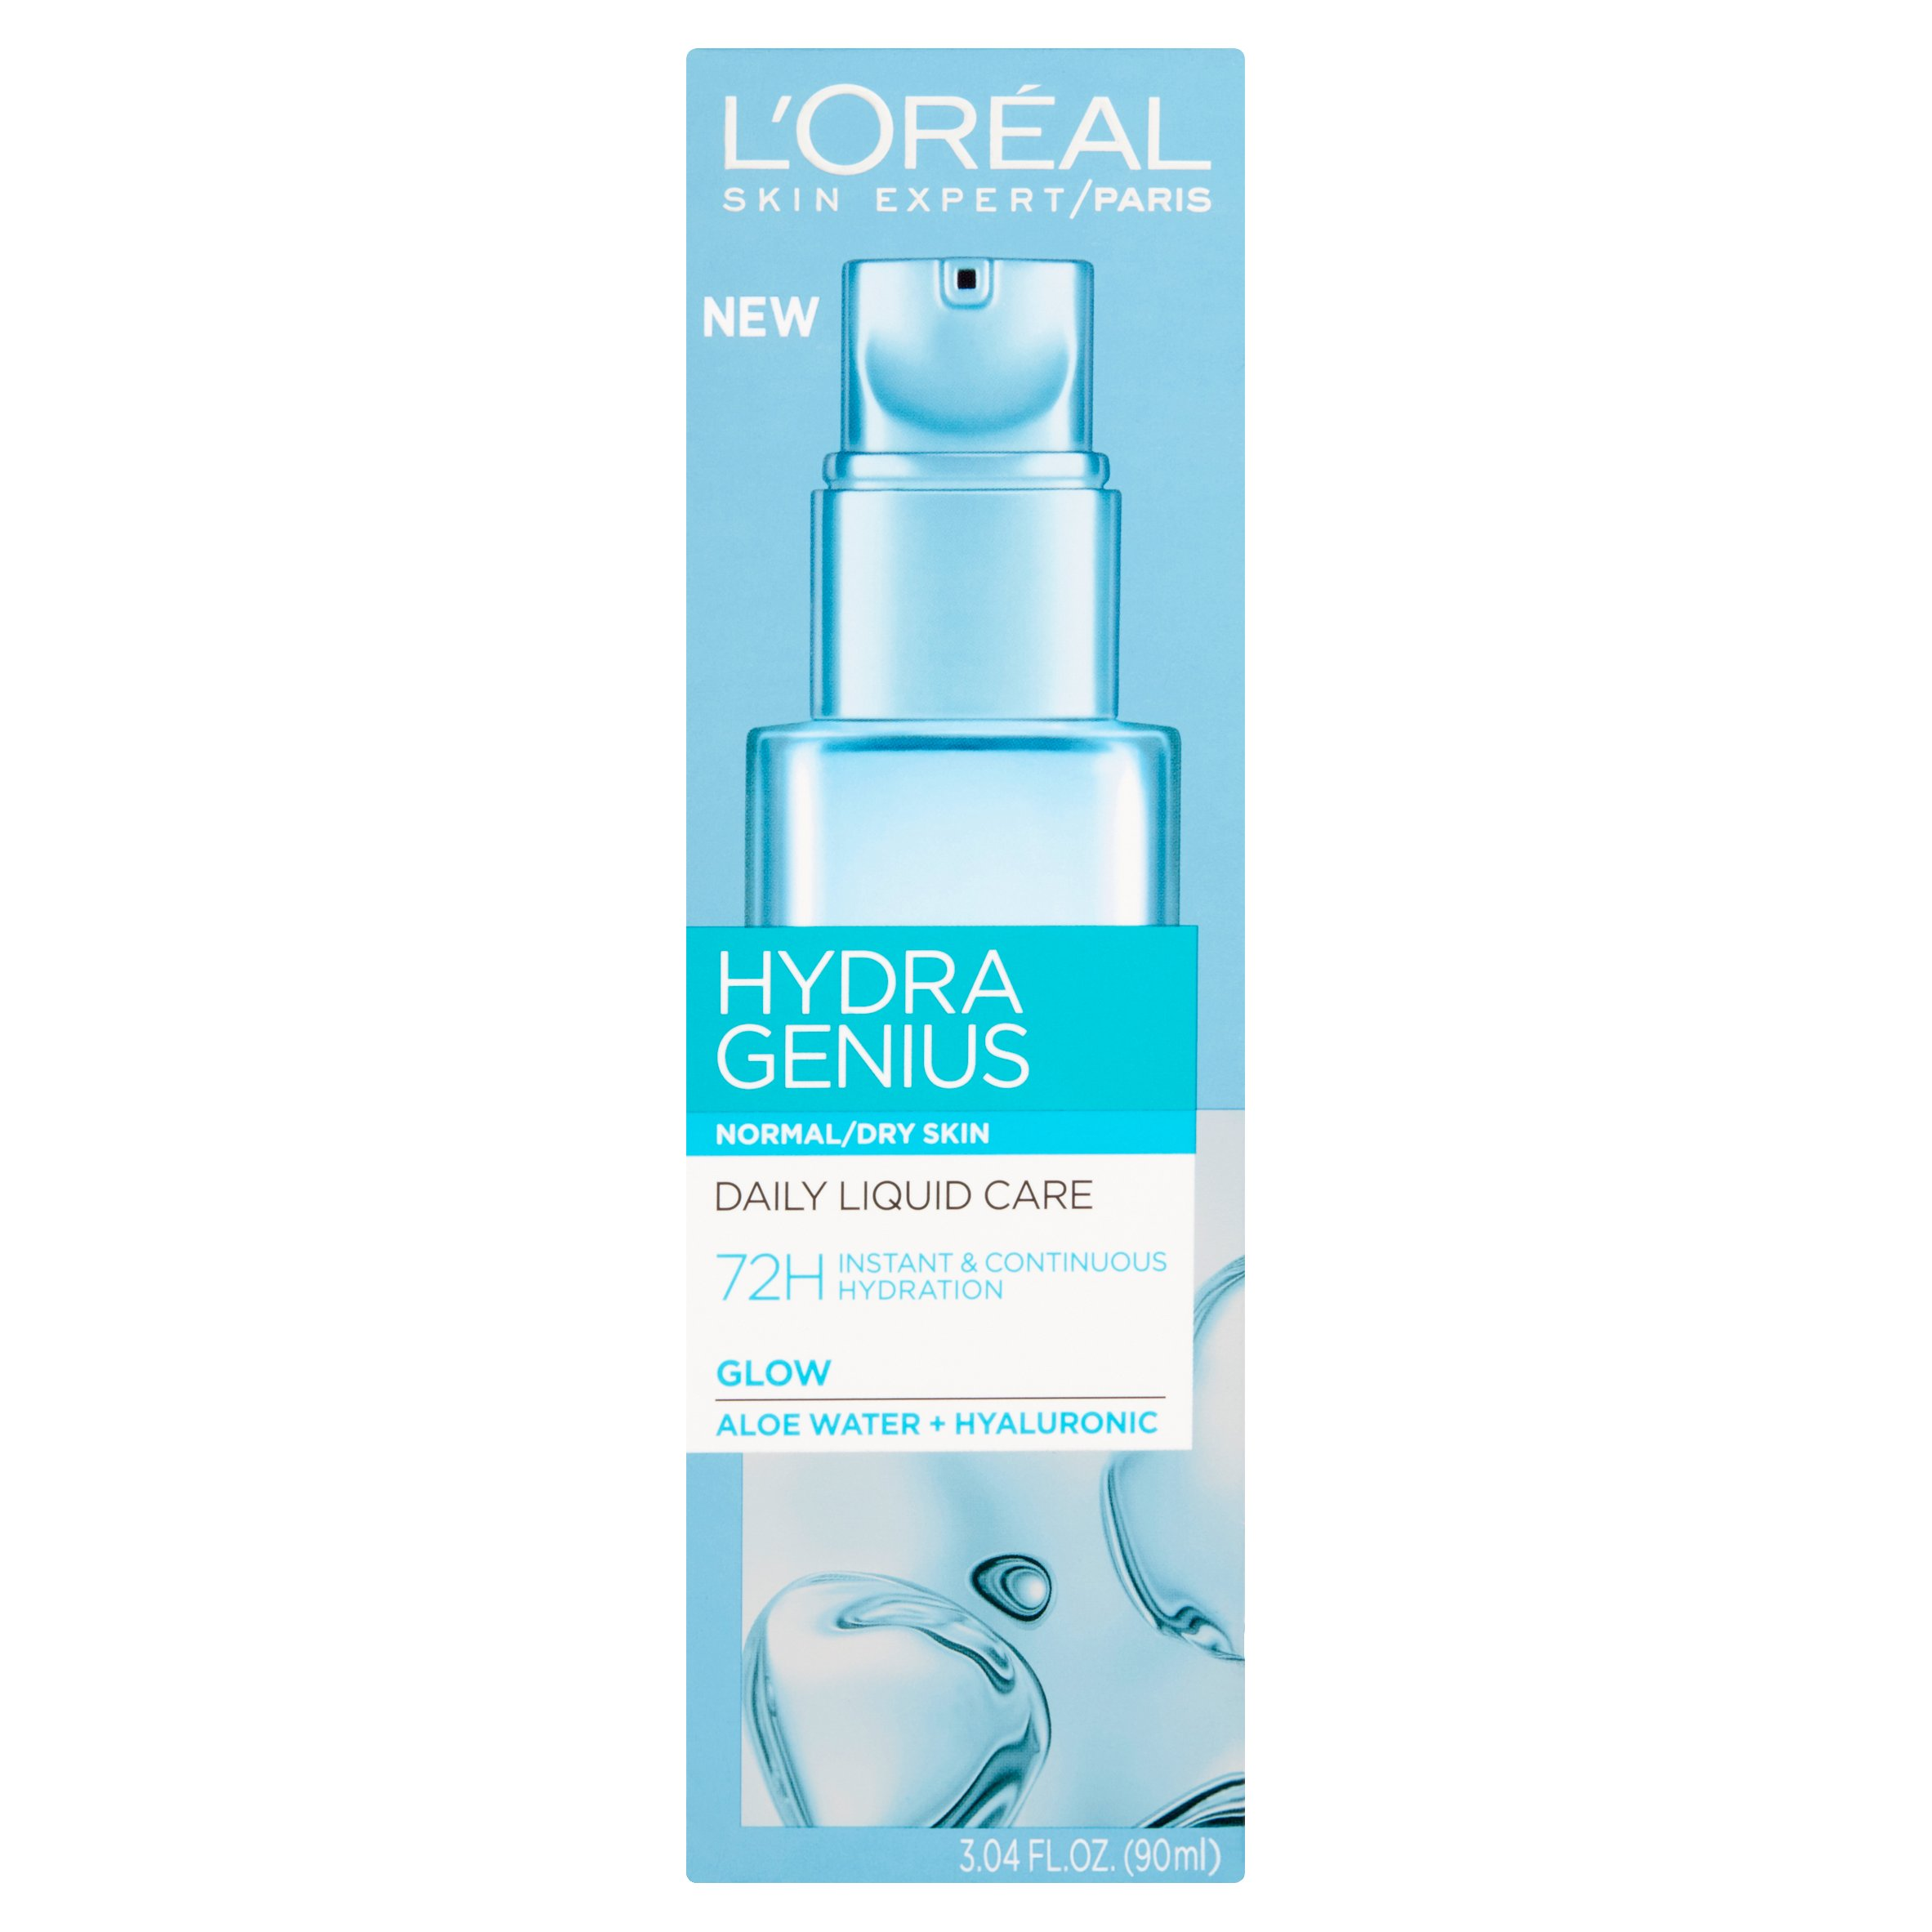 L'Oreal Paris Hydra Genius Daily Liquid Care For Normal to Dry Skin